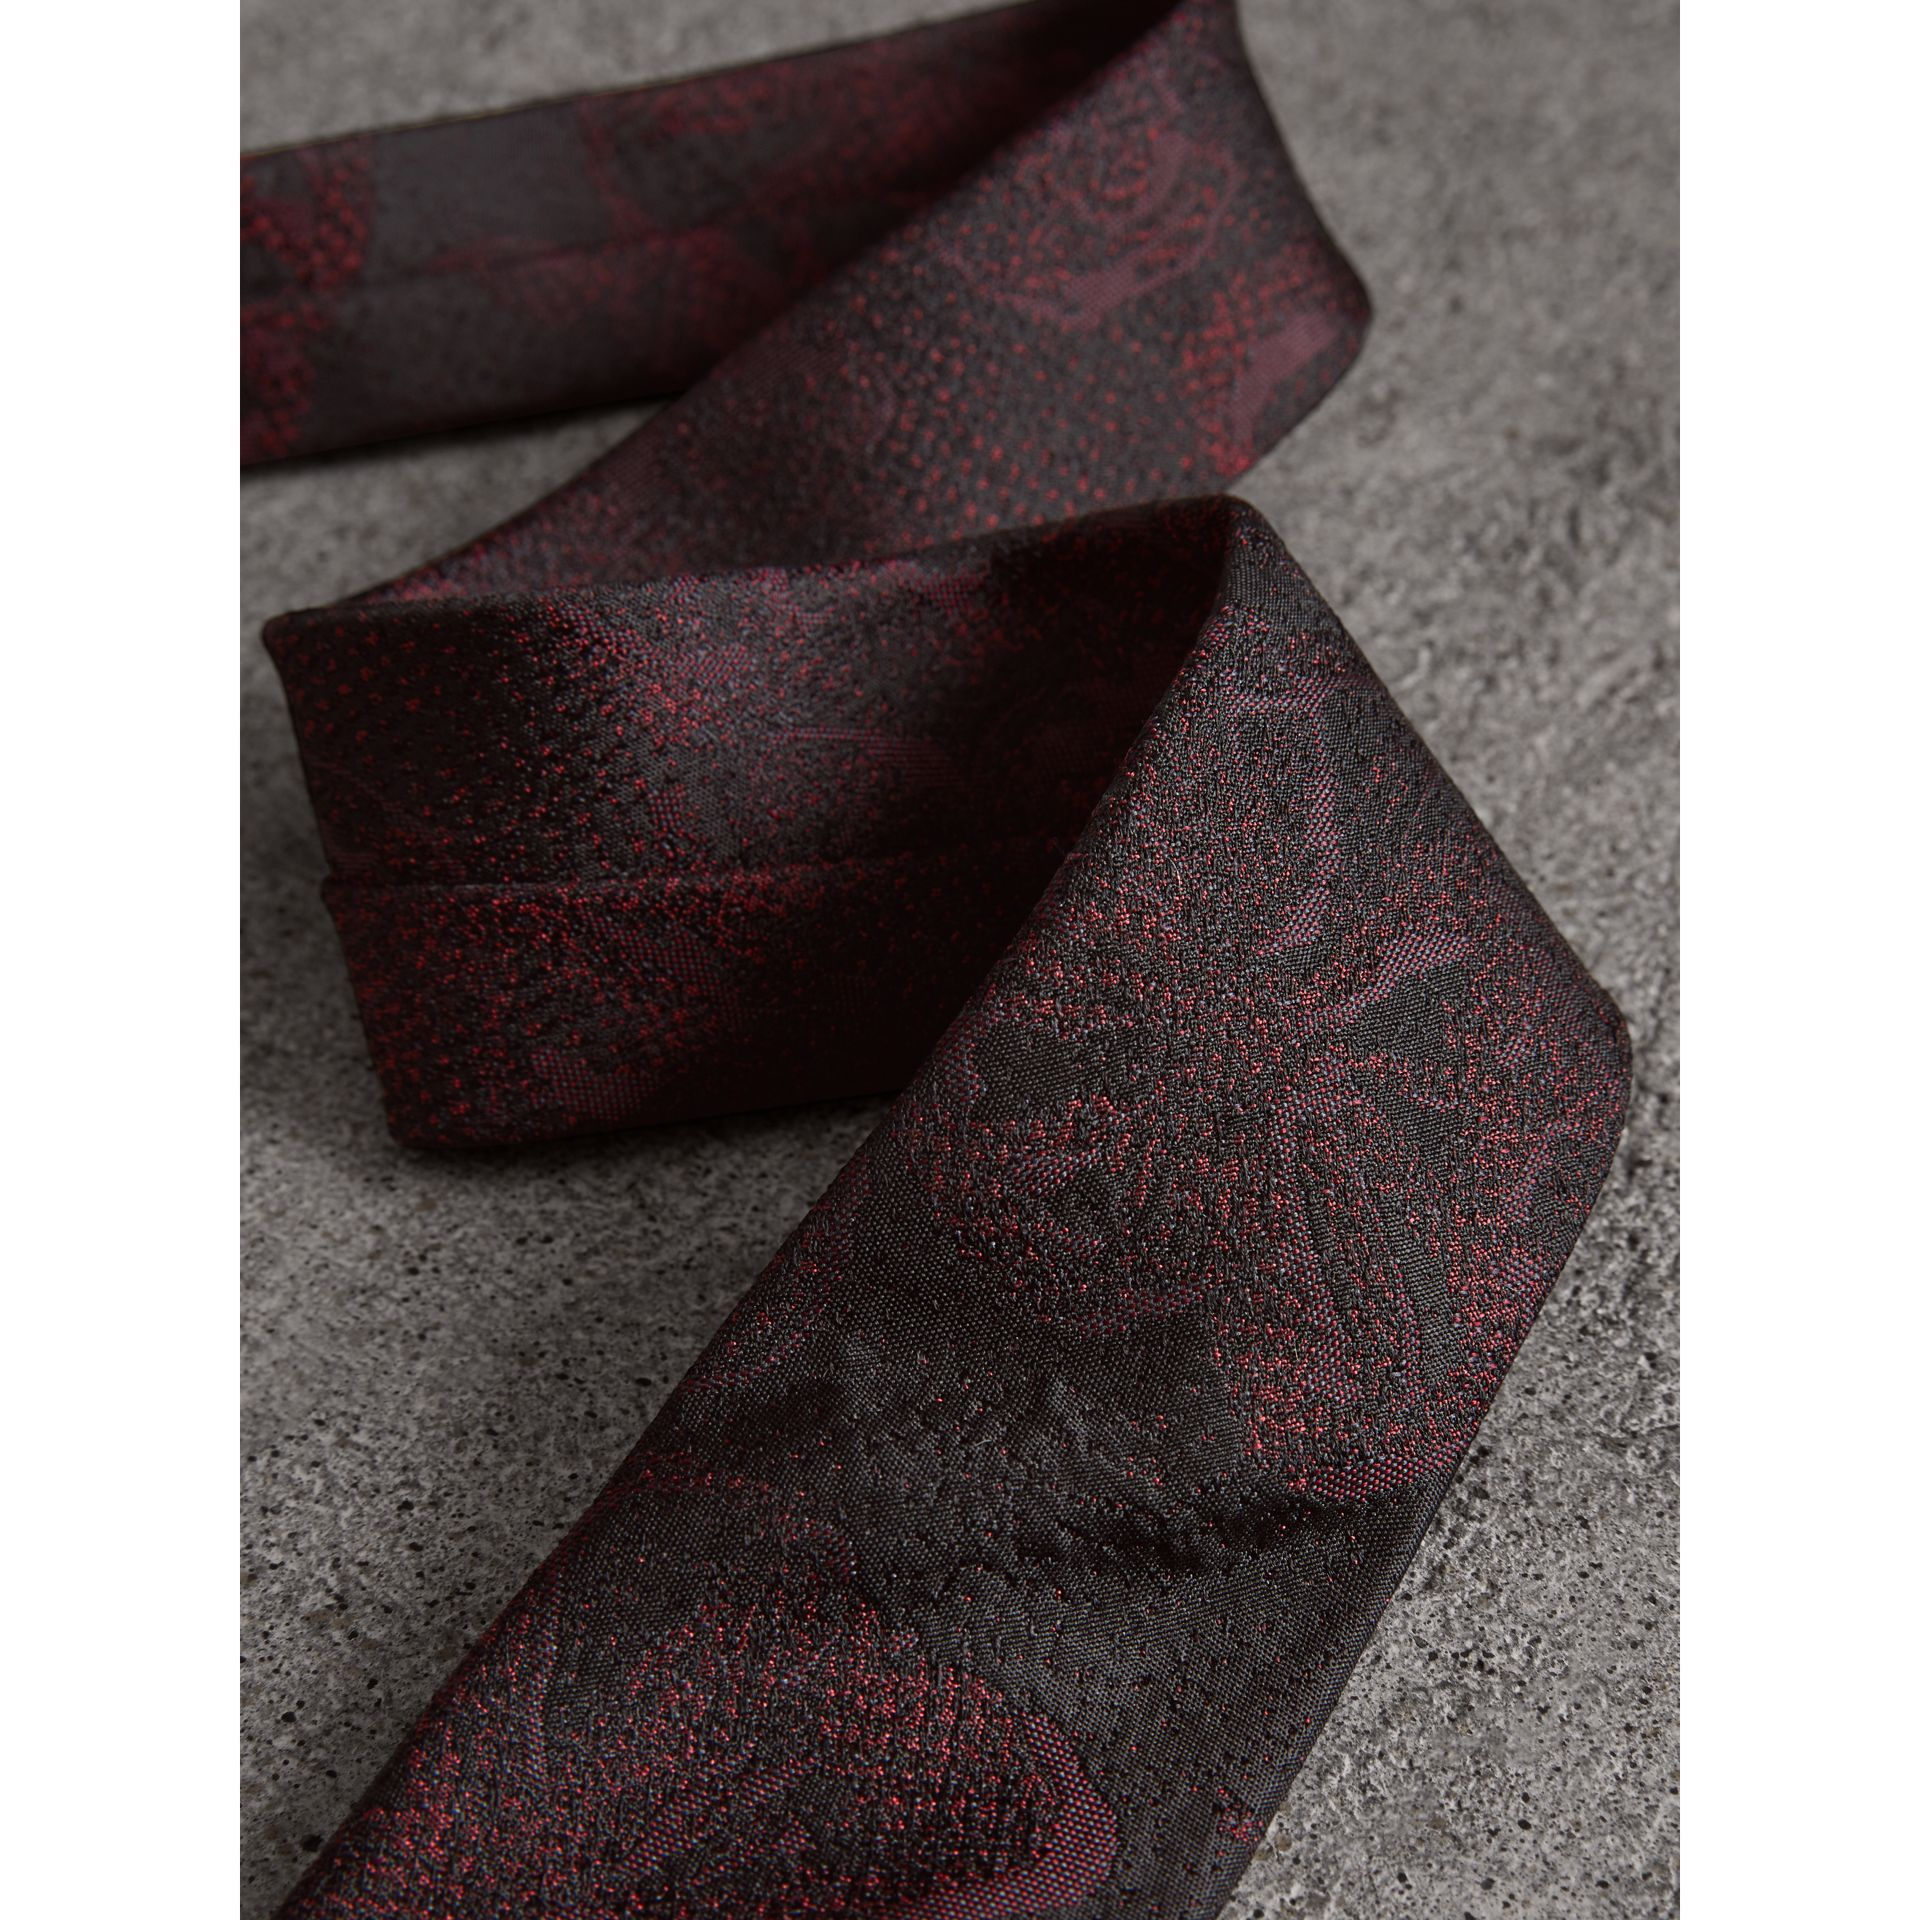 Slim Cut Floral Jacquard Silk Tie in Deep Claret - Men | Burberry Hong Kong - gallery image 1